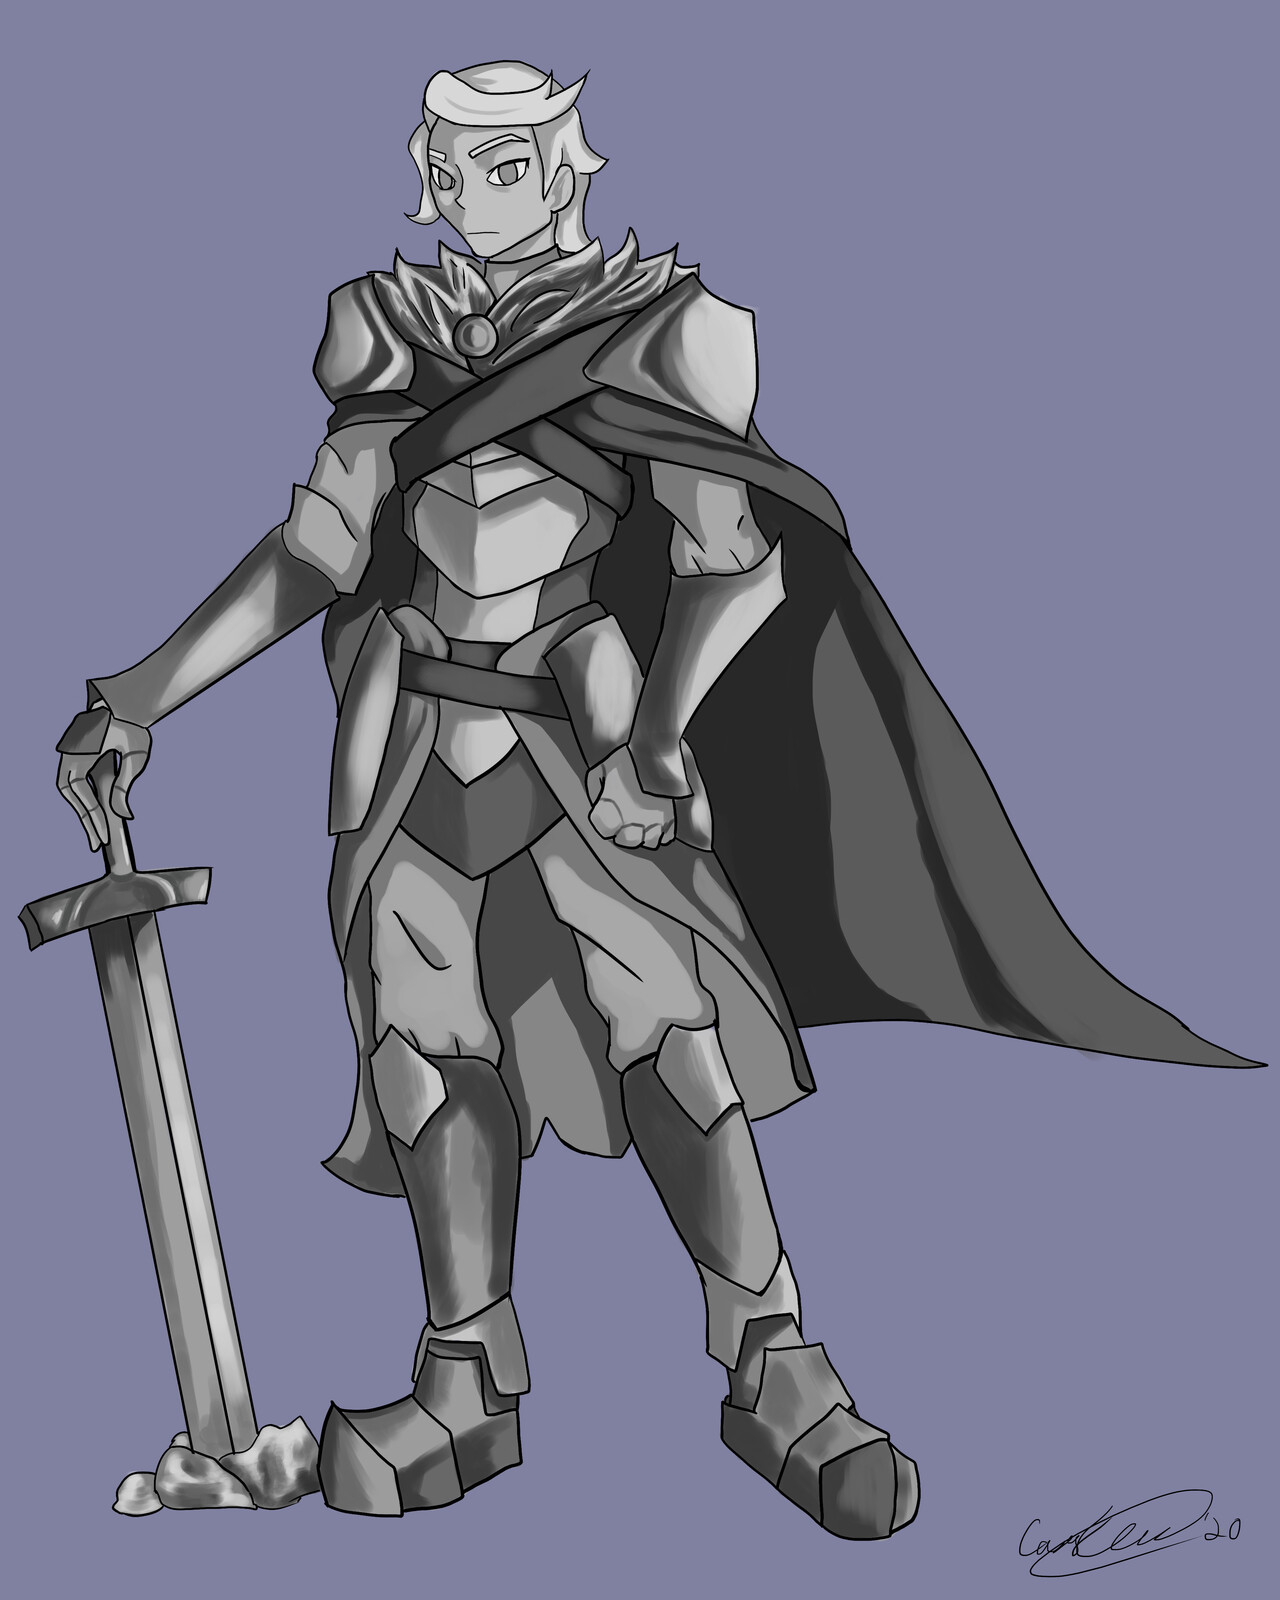 Before I color, I make a grayscale rendering of the desired version.